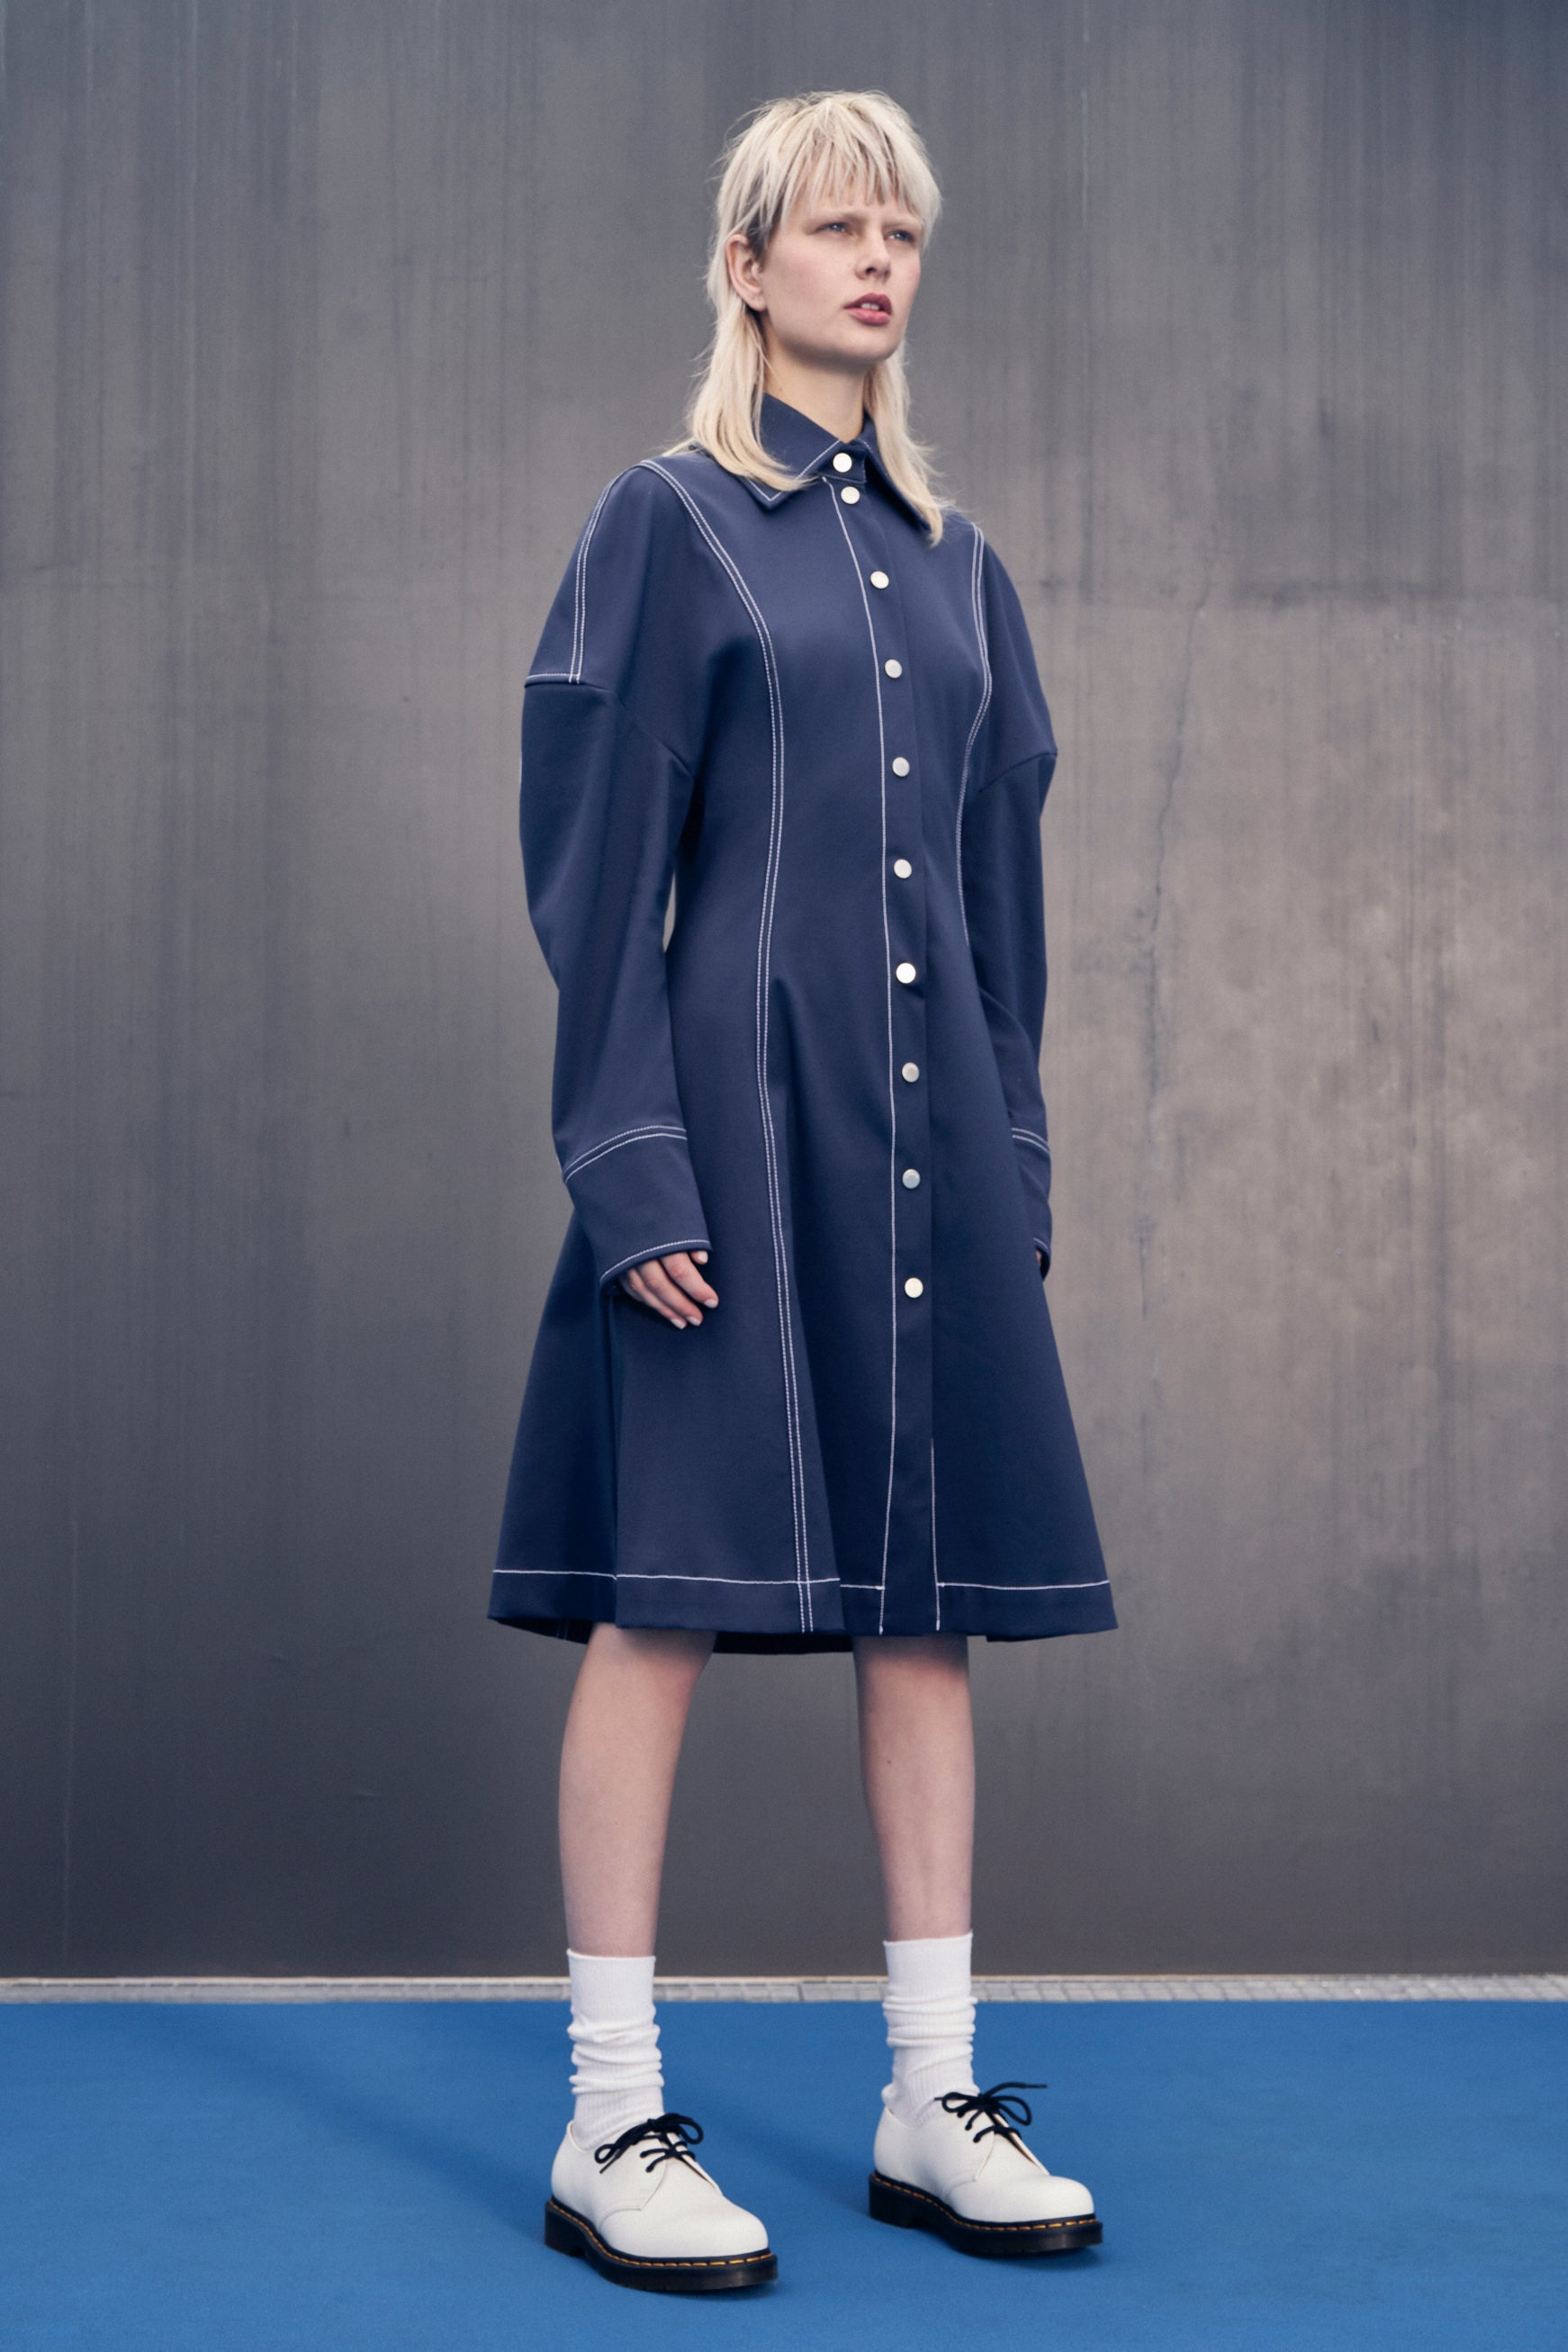 SLOUCHY SHIRT DRESS IN NAVY PONTE